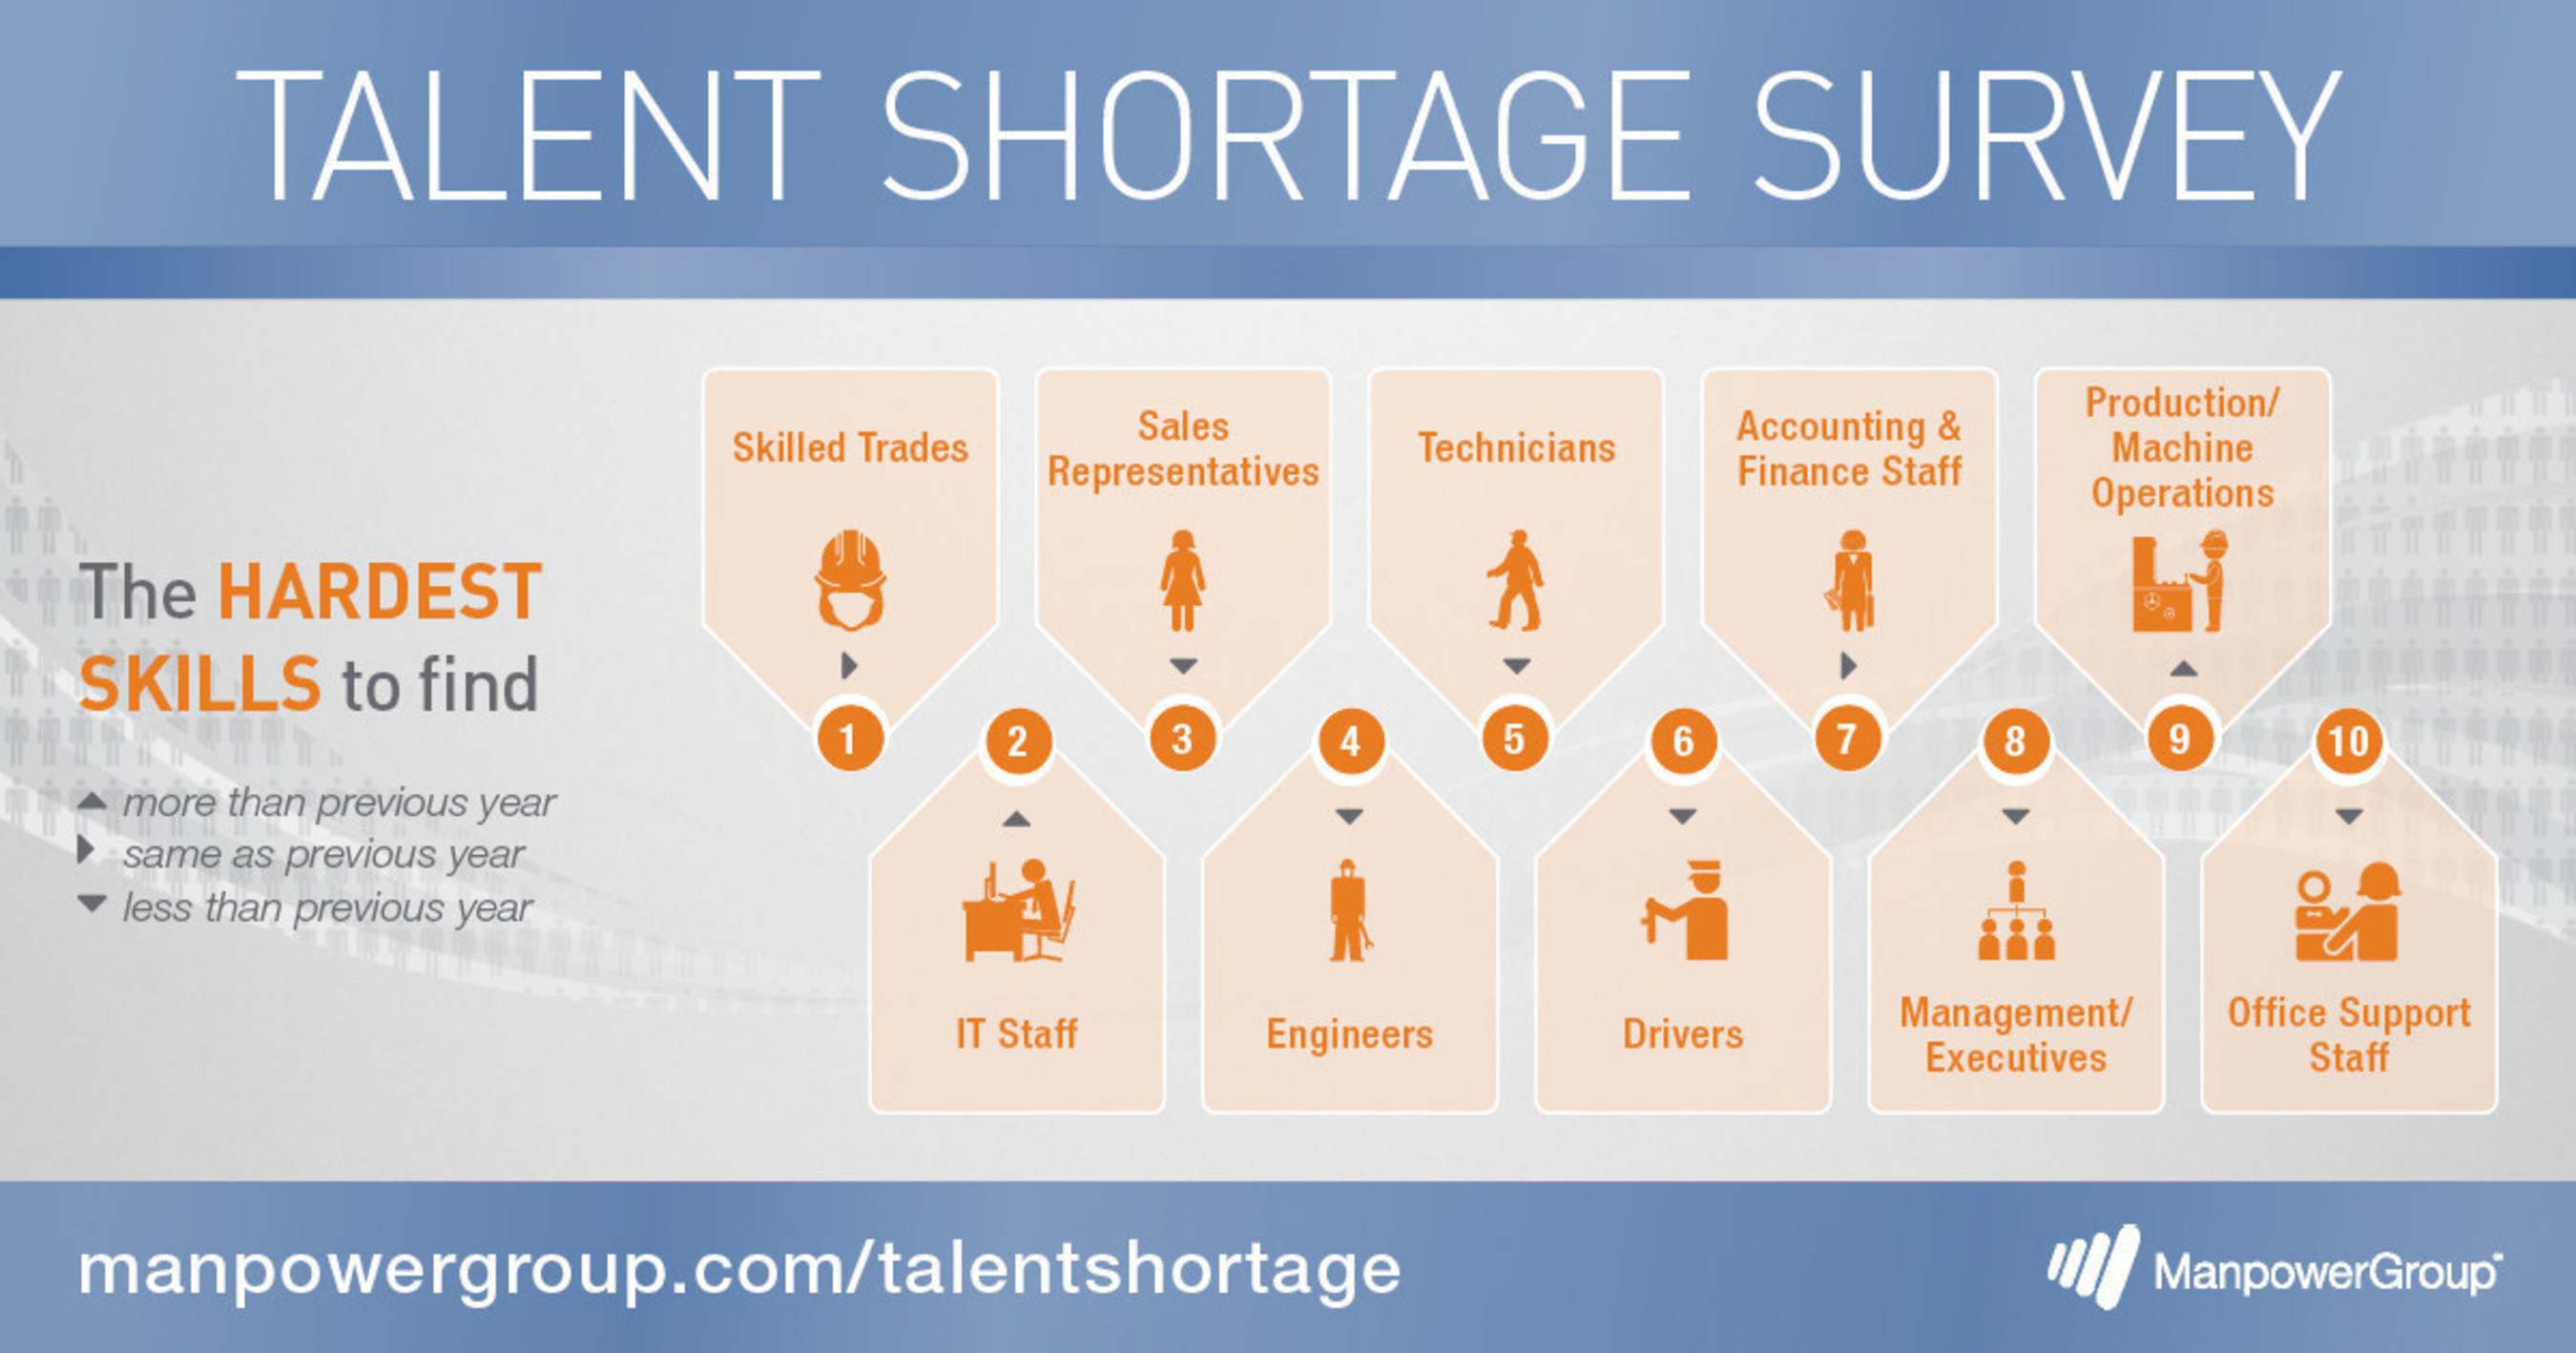 IT Talent Gap Grows with Tech Roles Second Hardest to Fill Globally